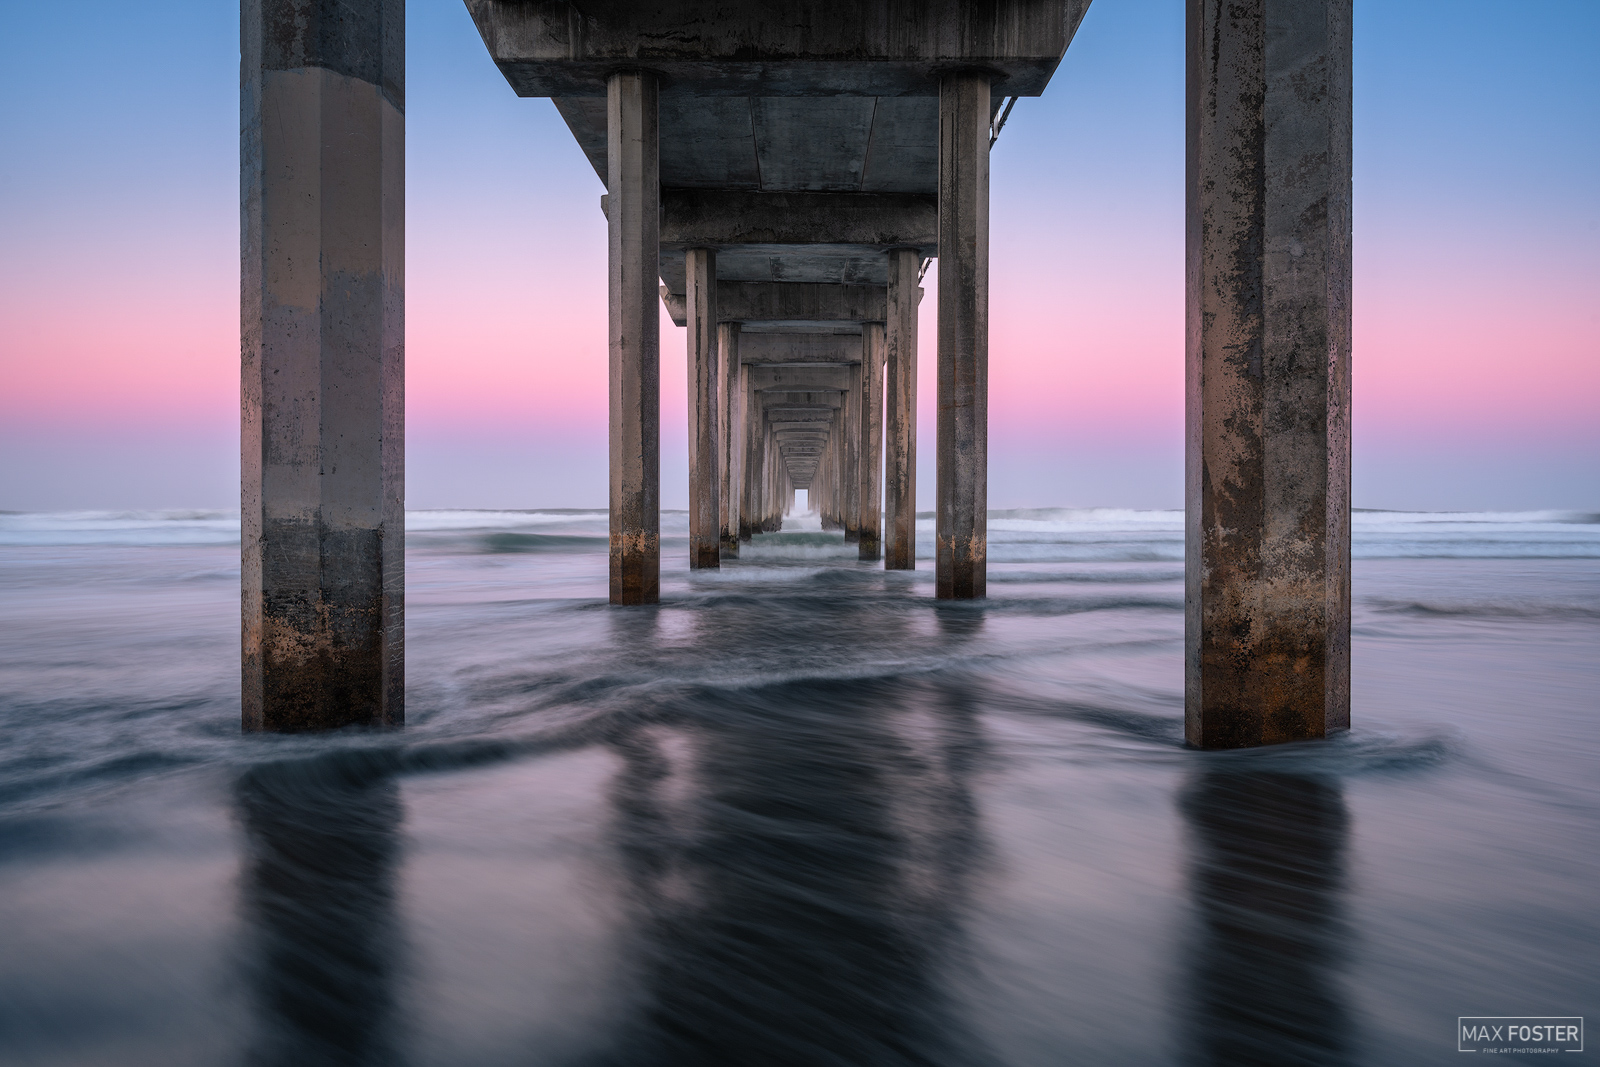 Fine Art Limited Edition of 100 This image is taken at the famous Scripps Pier on the Pacific Ocean in La Jolla, California....